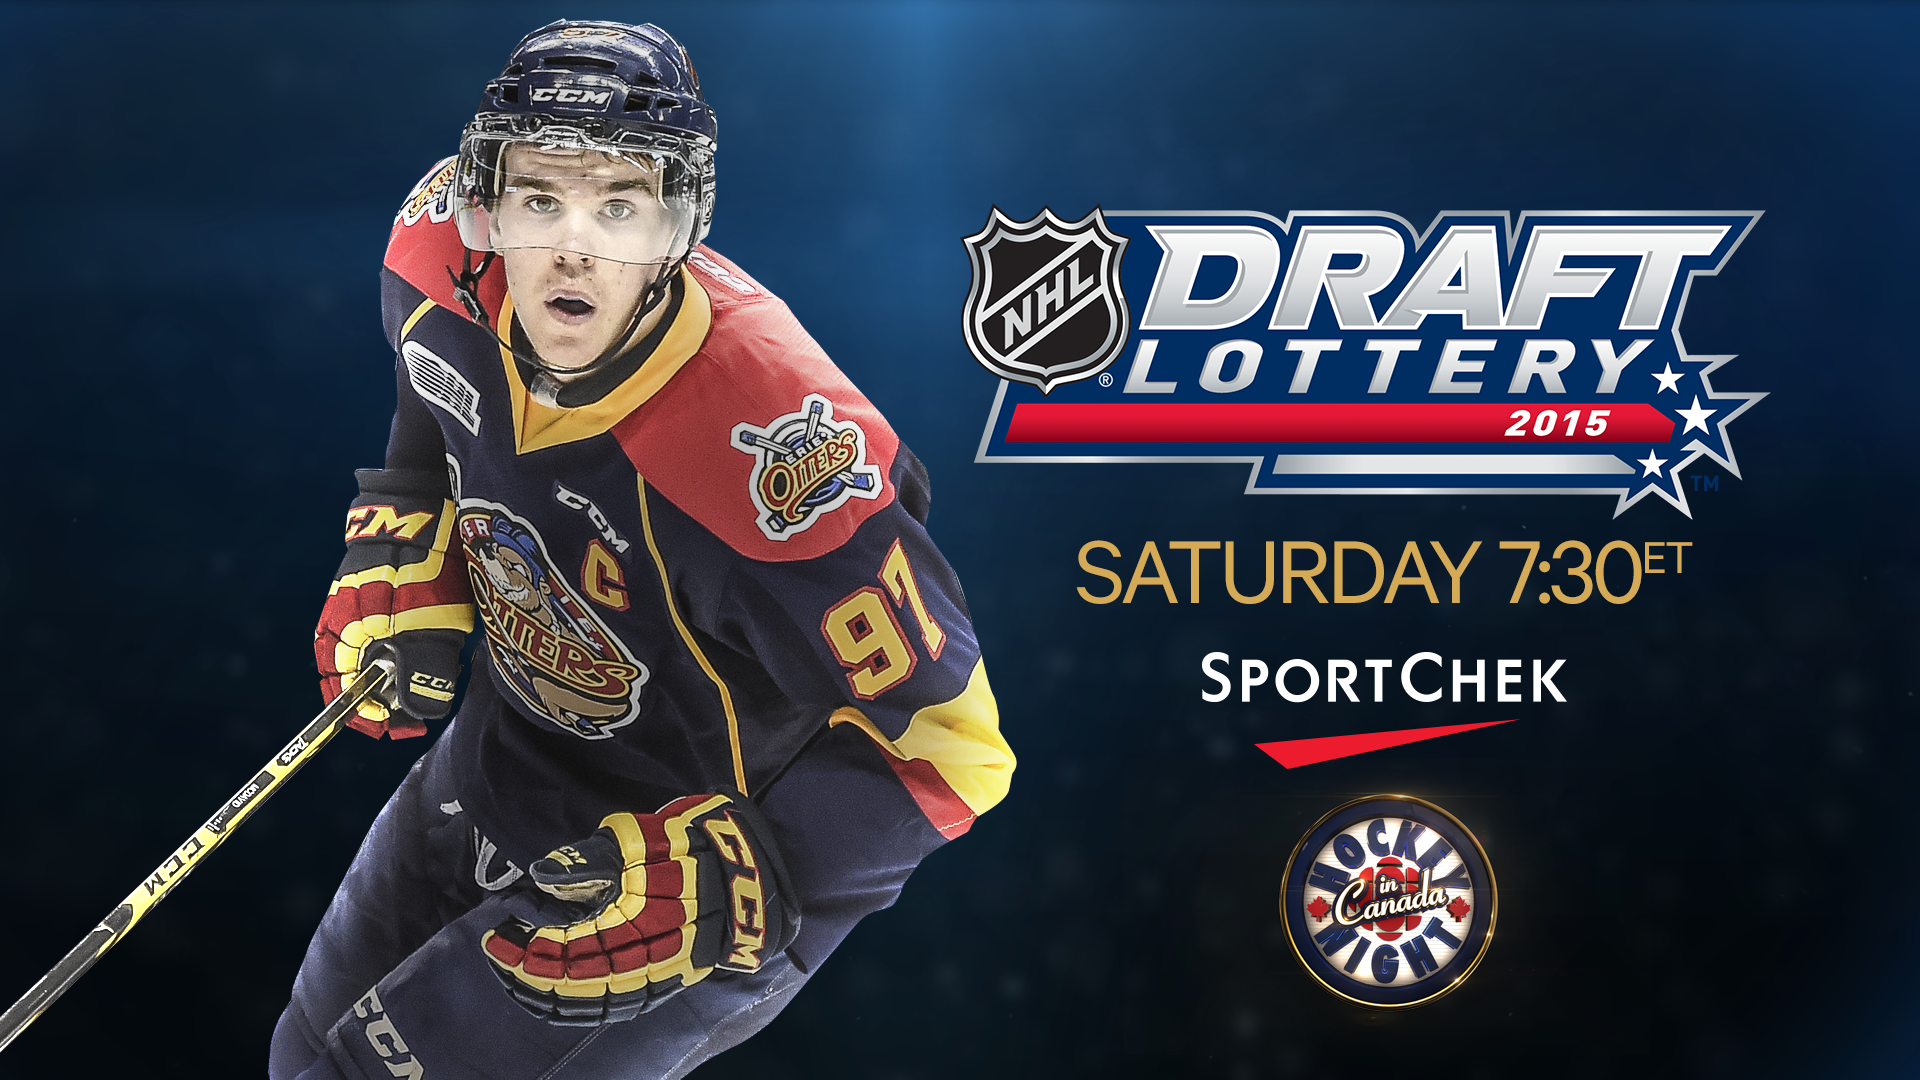 Gdt 2015 Nhl Draft Lottery Cbc 7 30pm Edmonton Wins Mcdavid